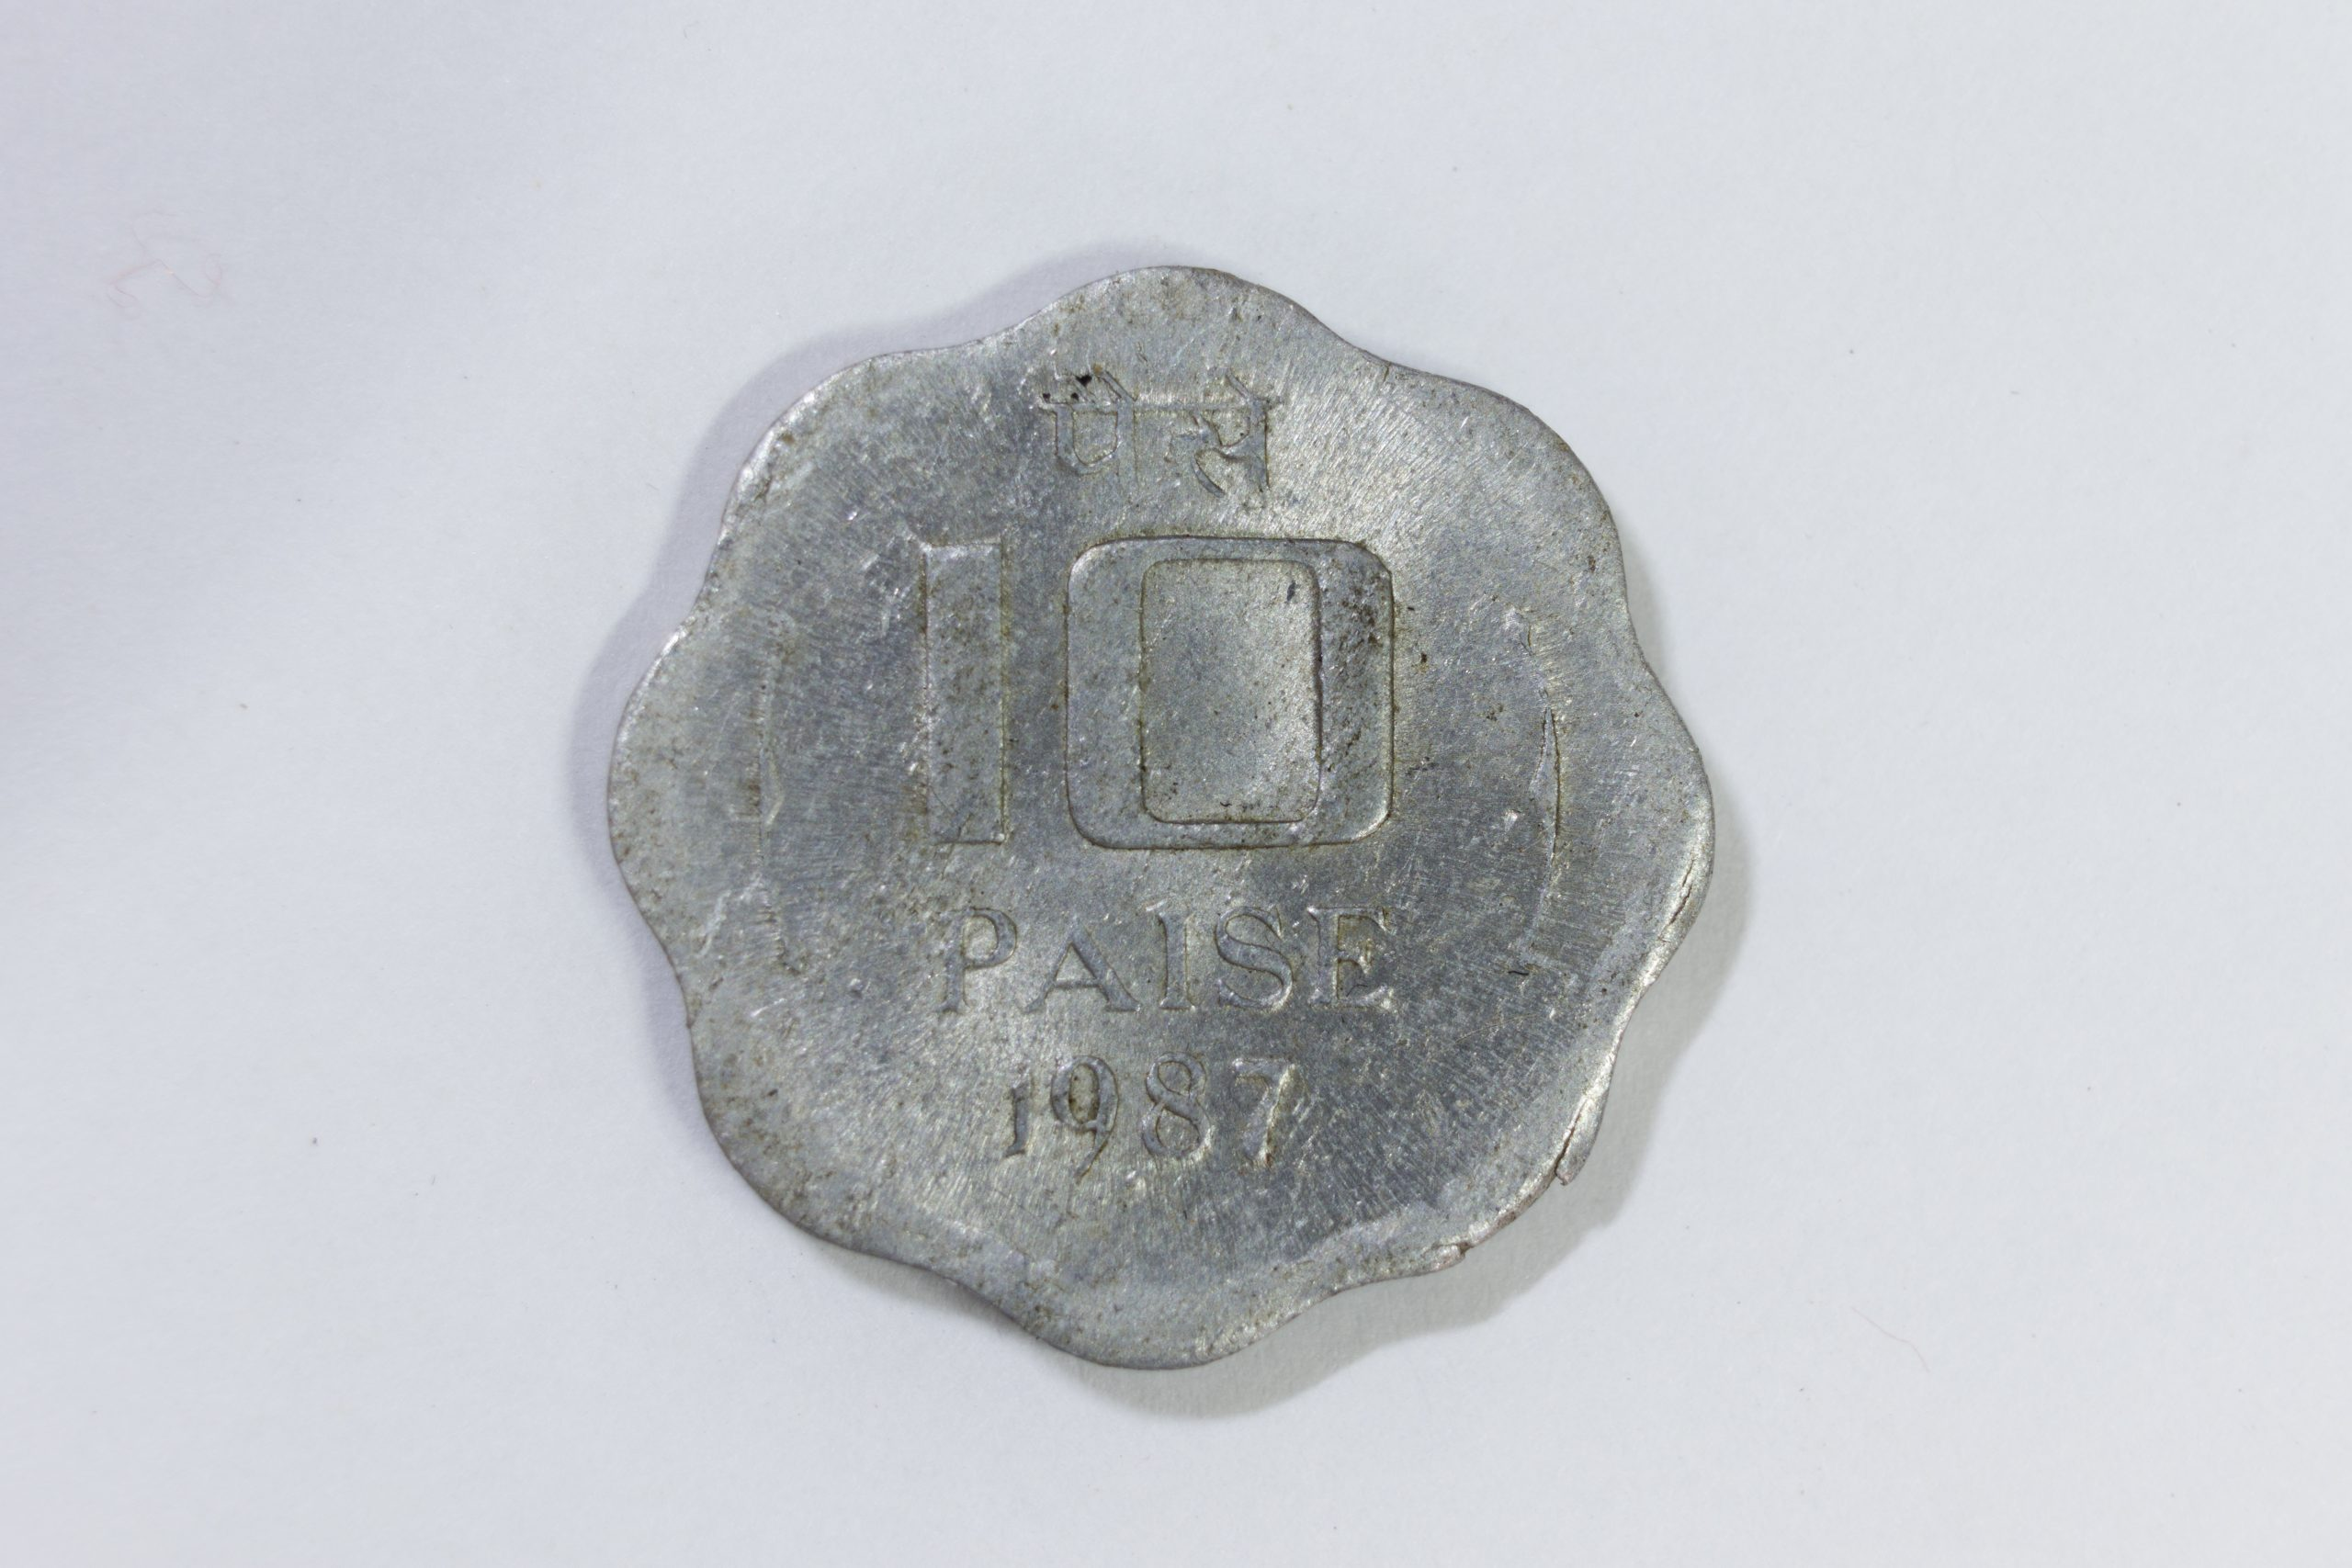 Snapshot of a old 10 paisa coin